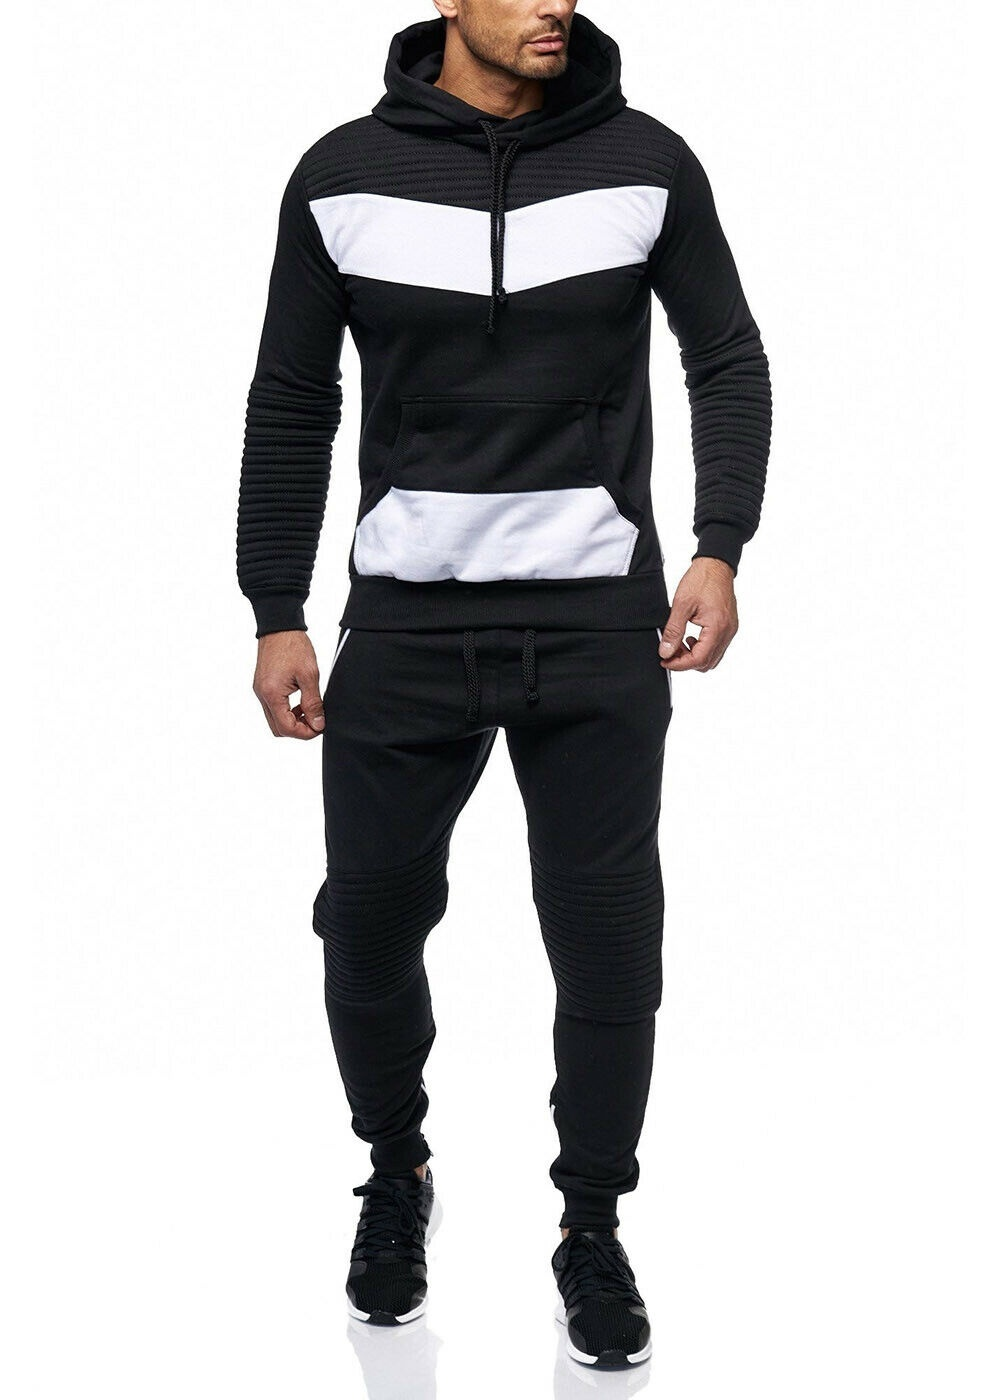 ZOGAA Men Tracksuit 2 Sets Of New Fashion Jacket Sportswear Men's Sweatpants Hoodies Spring And Autumn Men's Brand Hoodies Pants